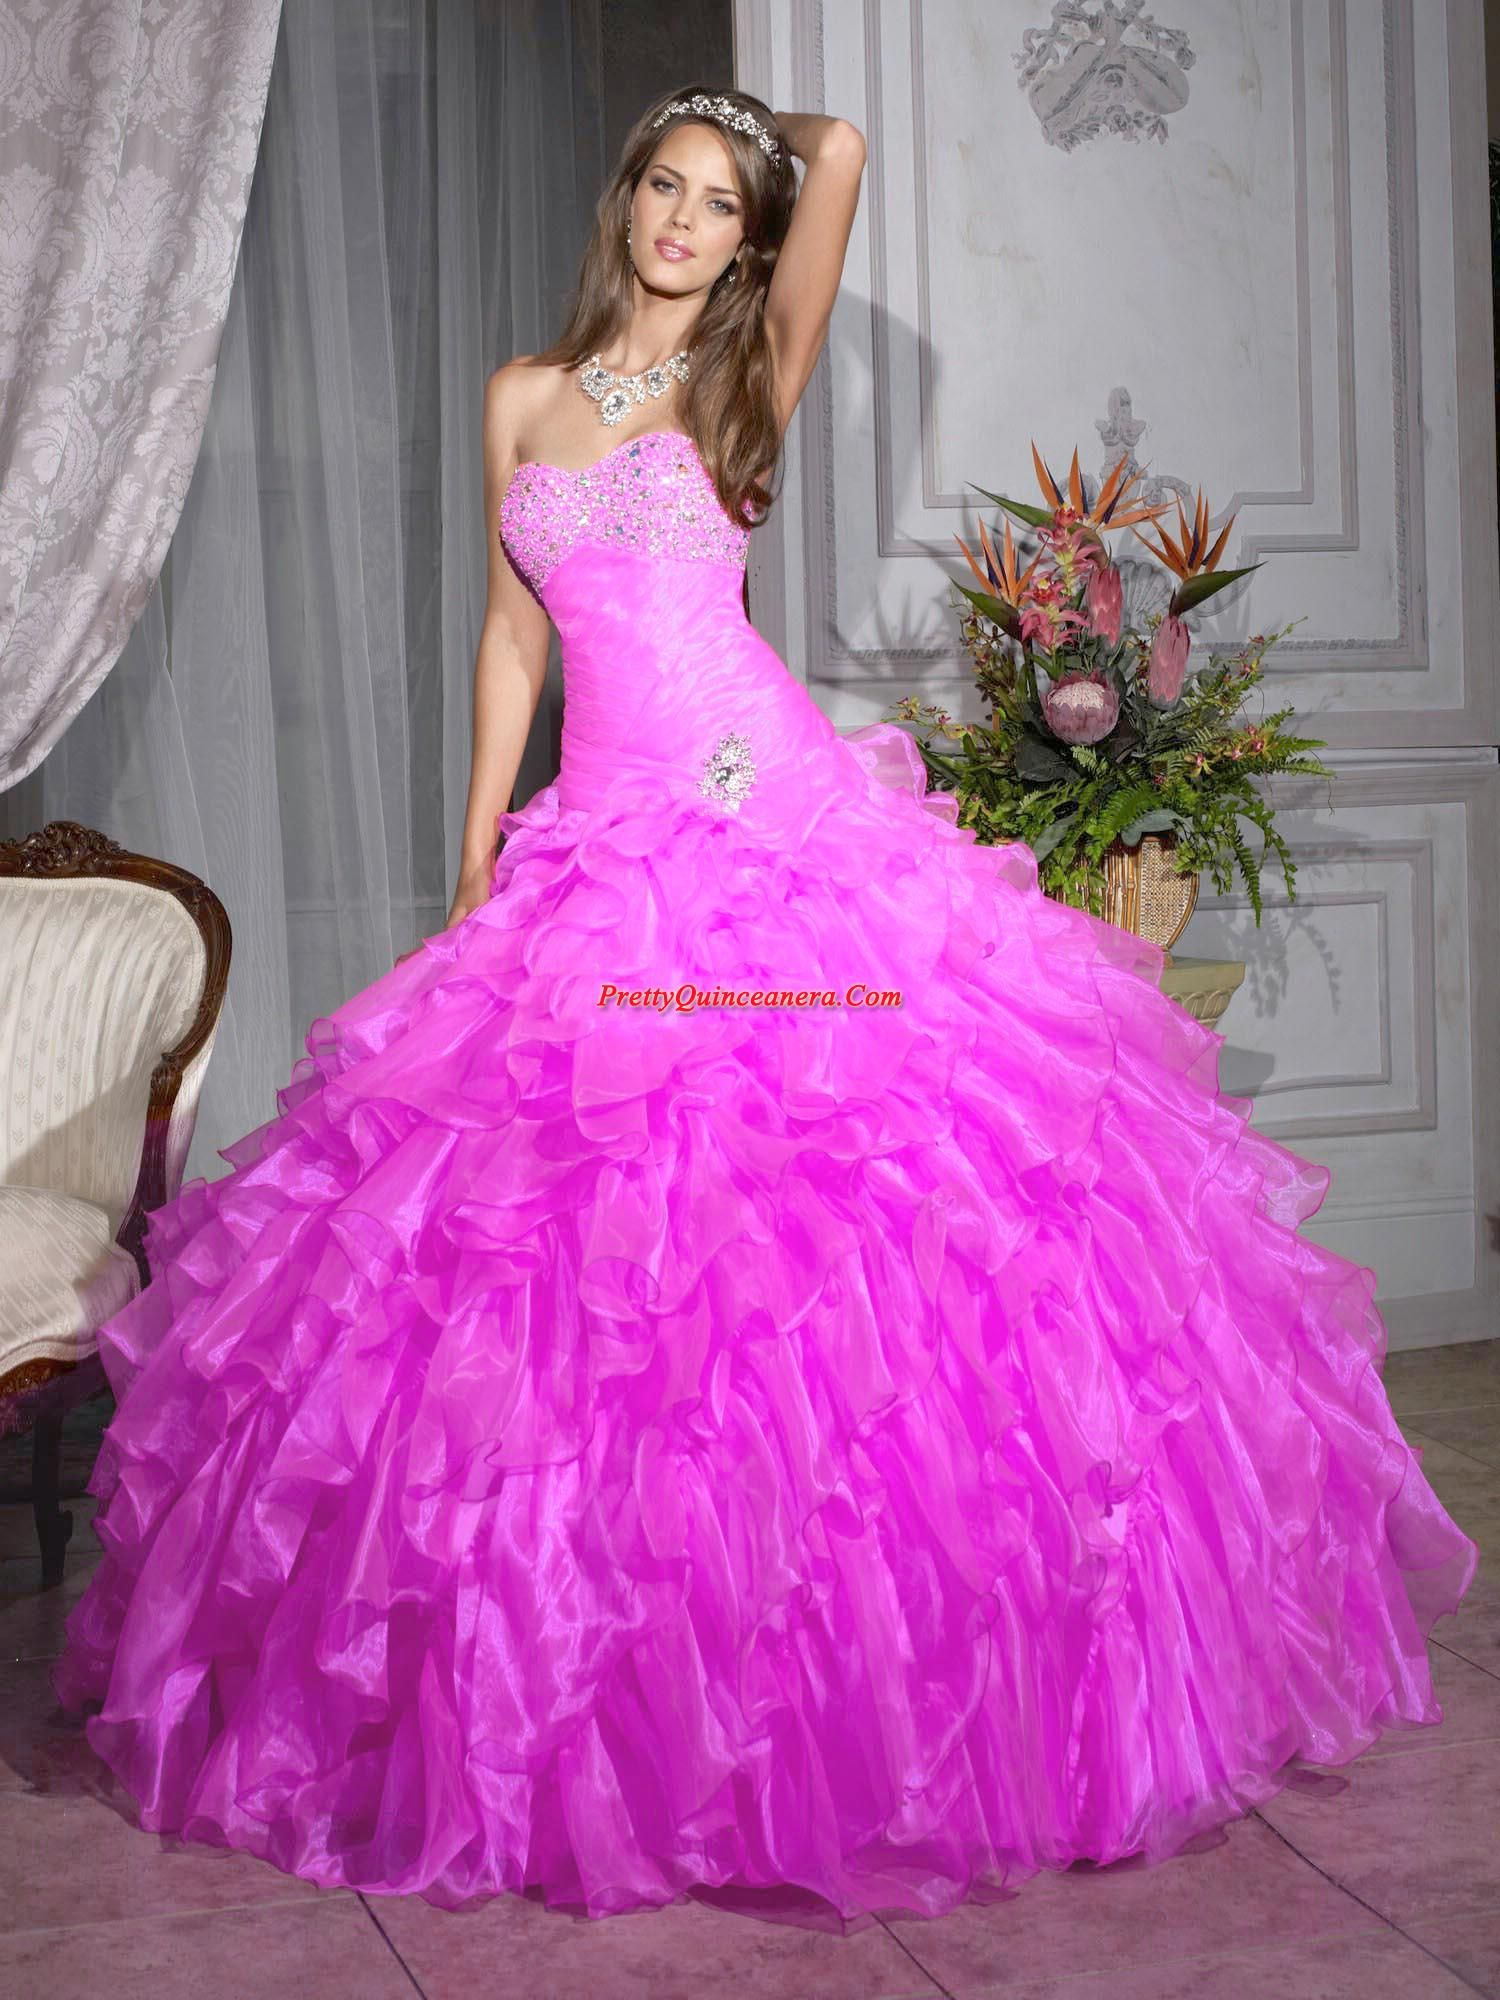 Pink quinceanera gown dress fashionable detachable ball gown